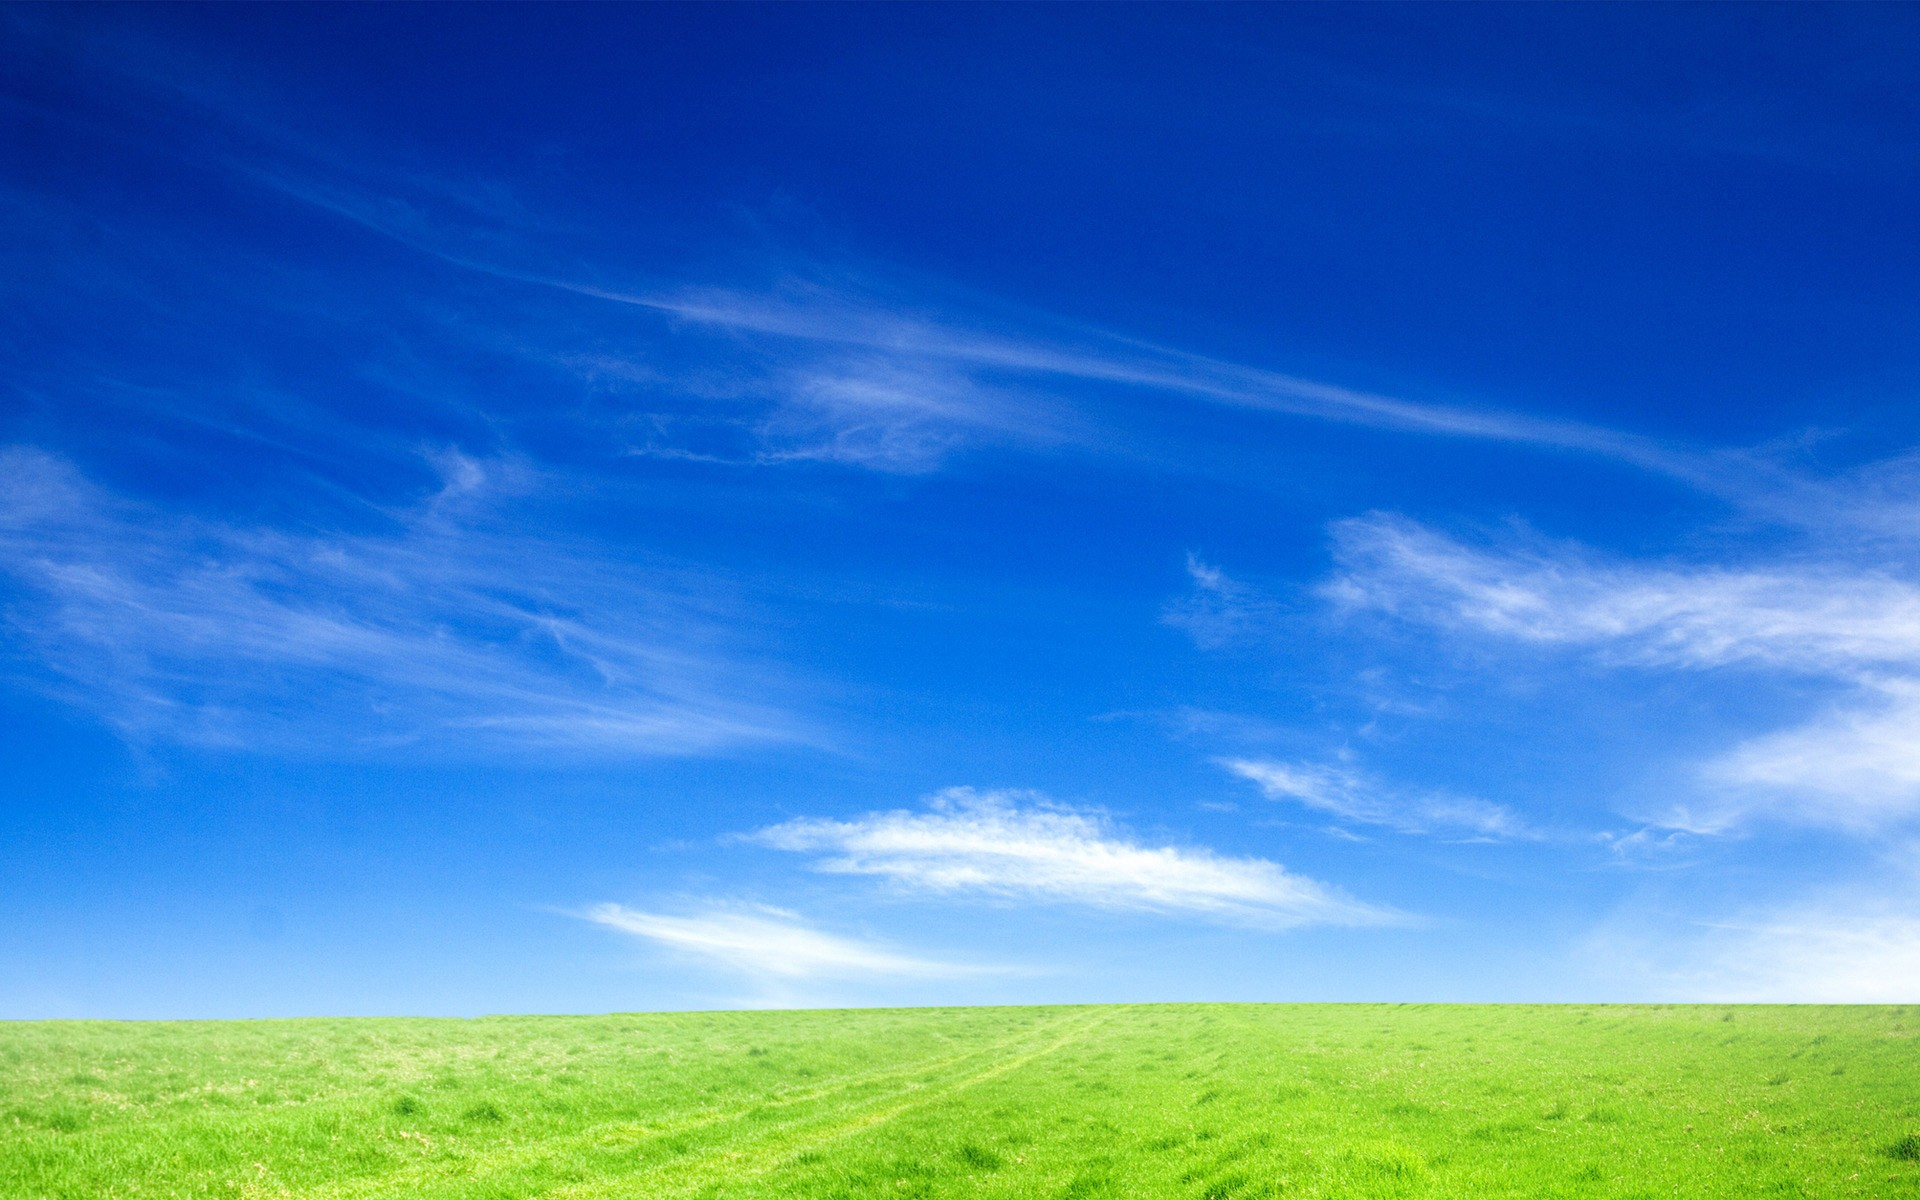 Top 10 3d Wallpapers For Desktop Blue Sky And Green Grass Wallpapers Hd Wallpapers Id